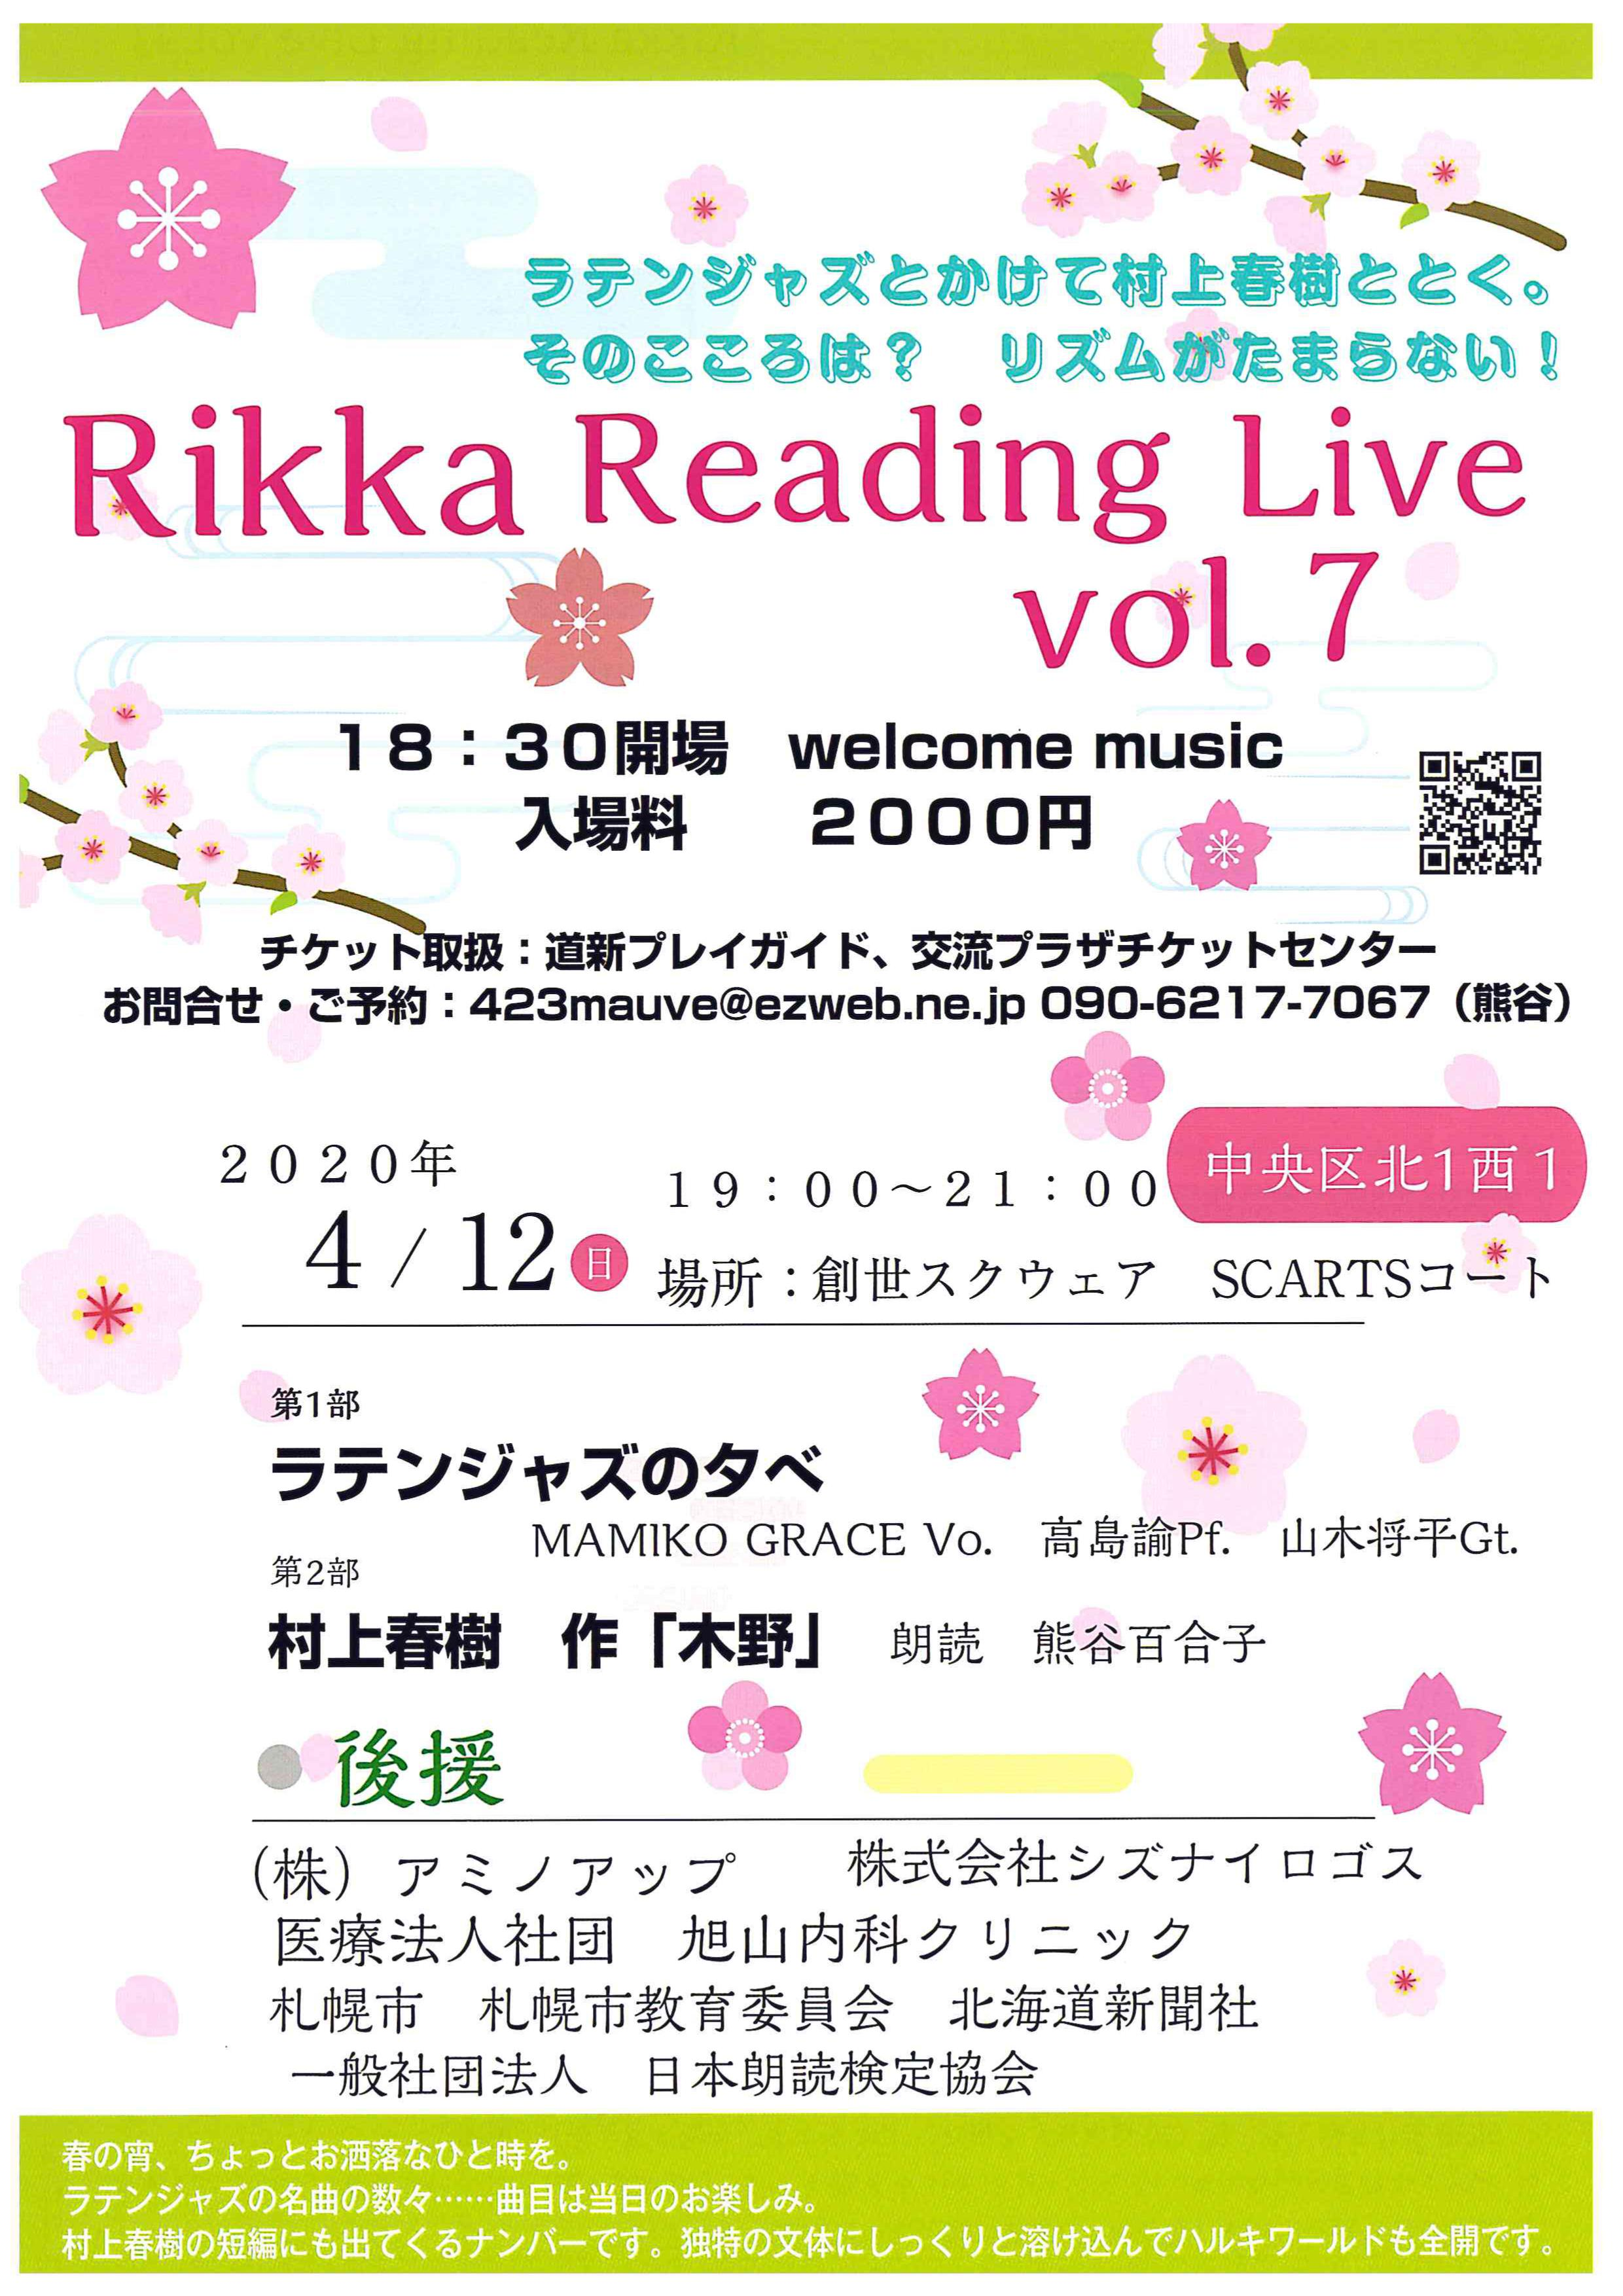 【公演延期】Rikka Reading Live vol.7のイメージ